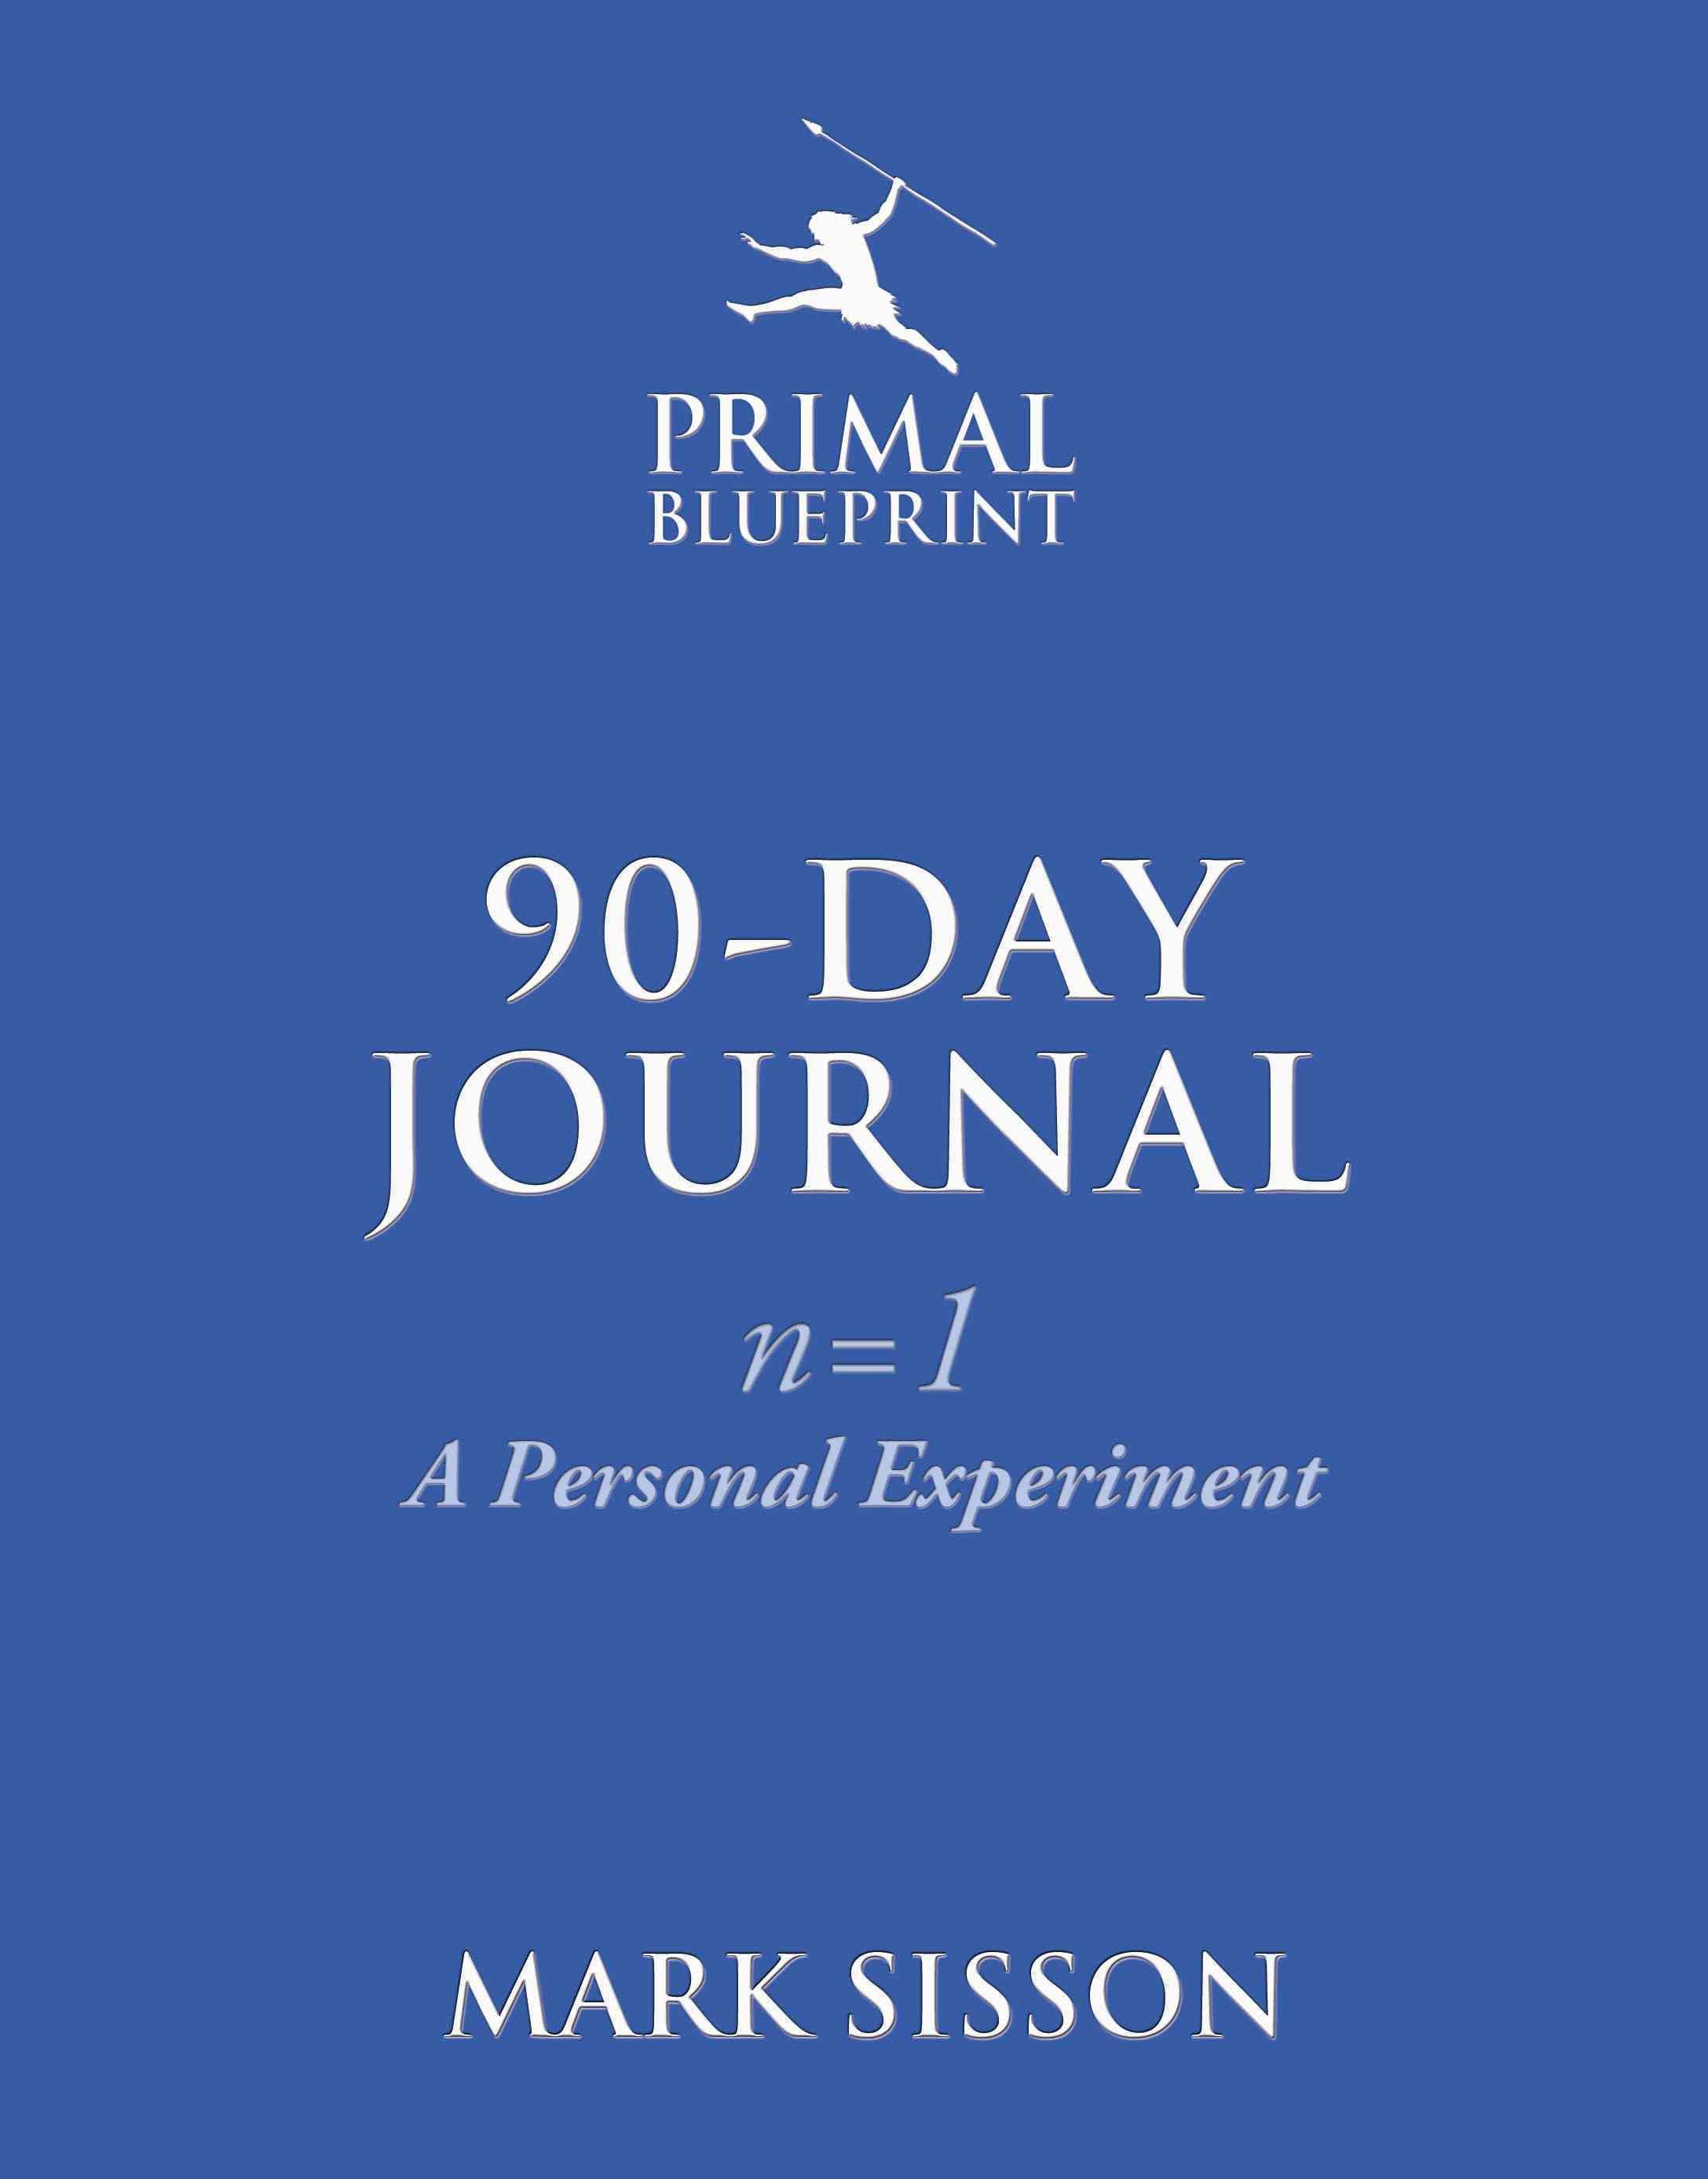 The primal blueprint 90 day journal a personal experiment is a the primal blueprint 90 day journal a personal experiment is a comprehensive diet malvernweather Gallery